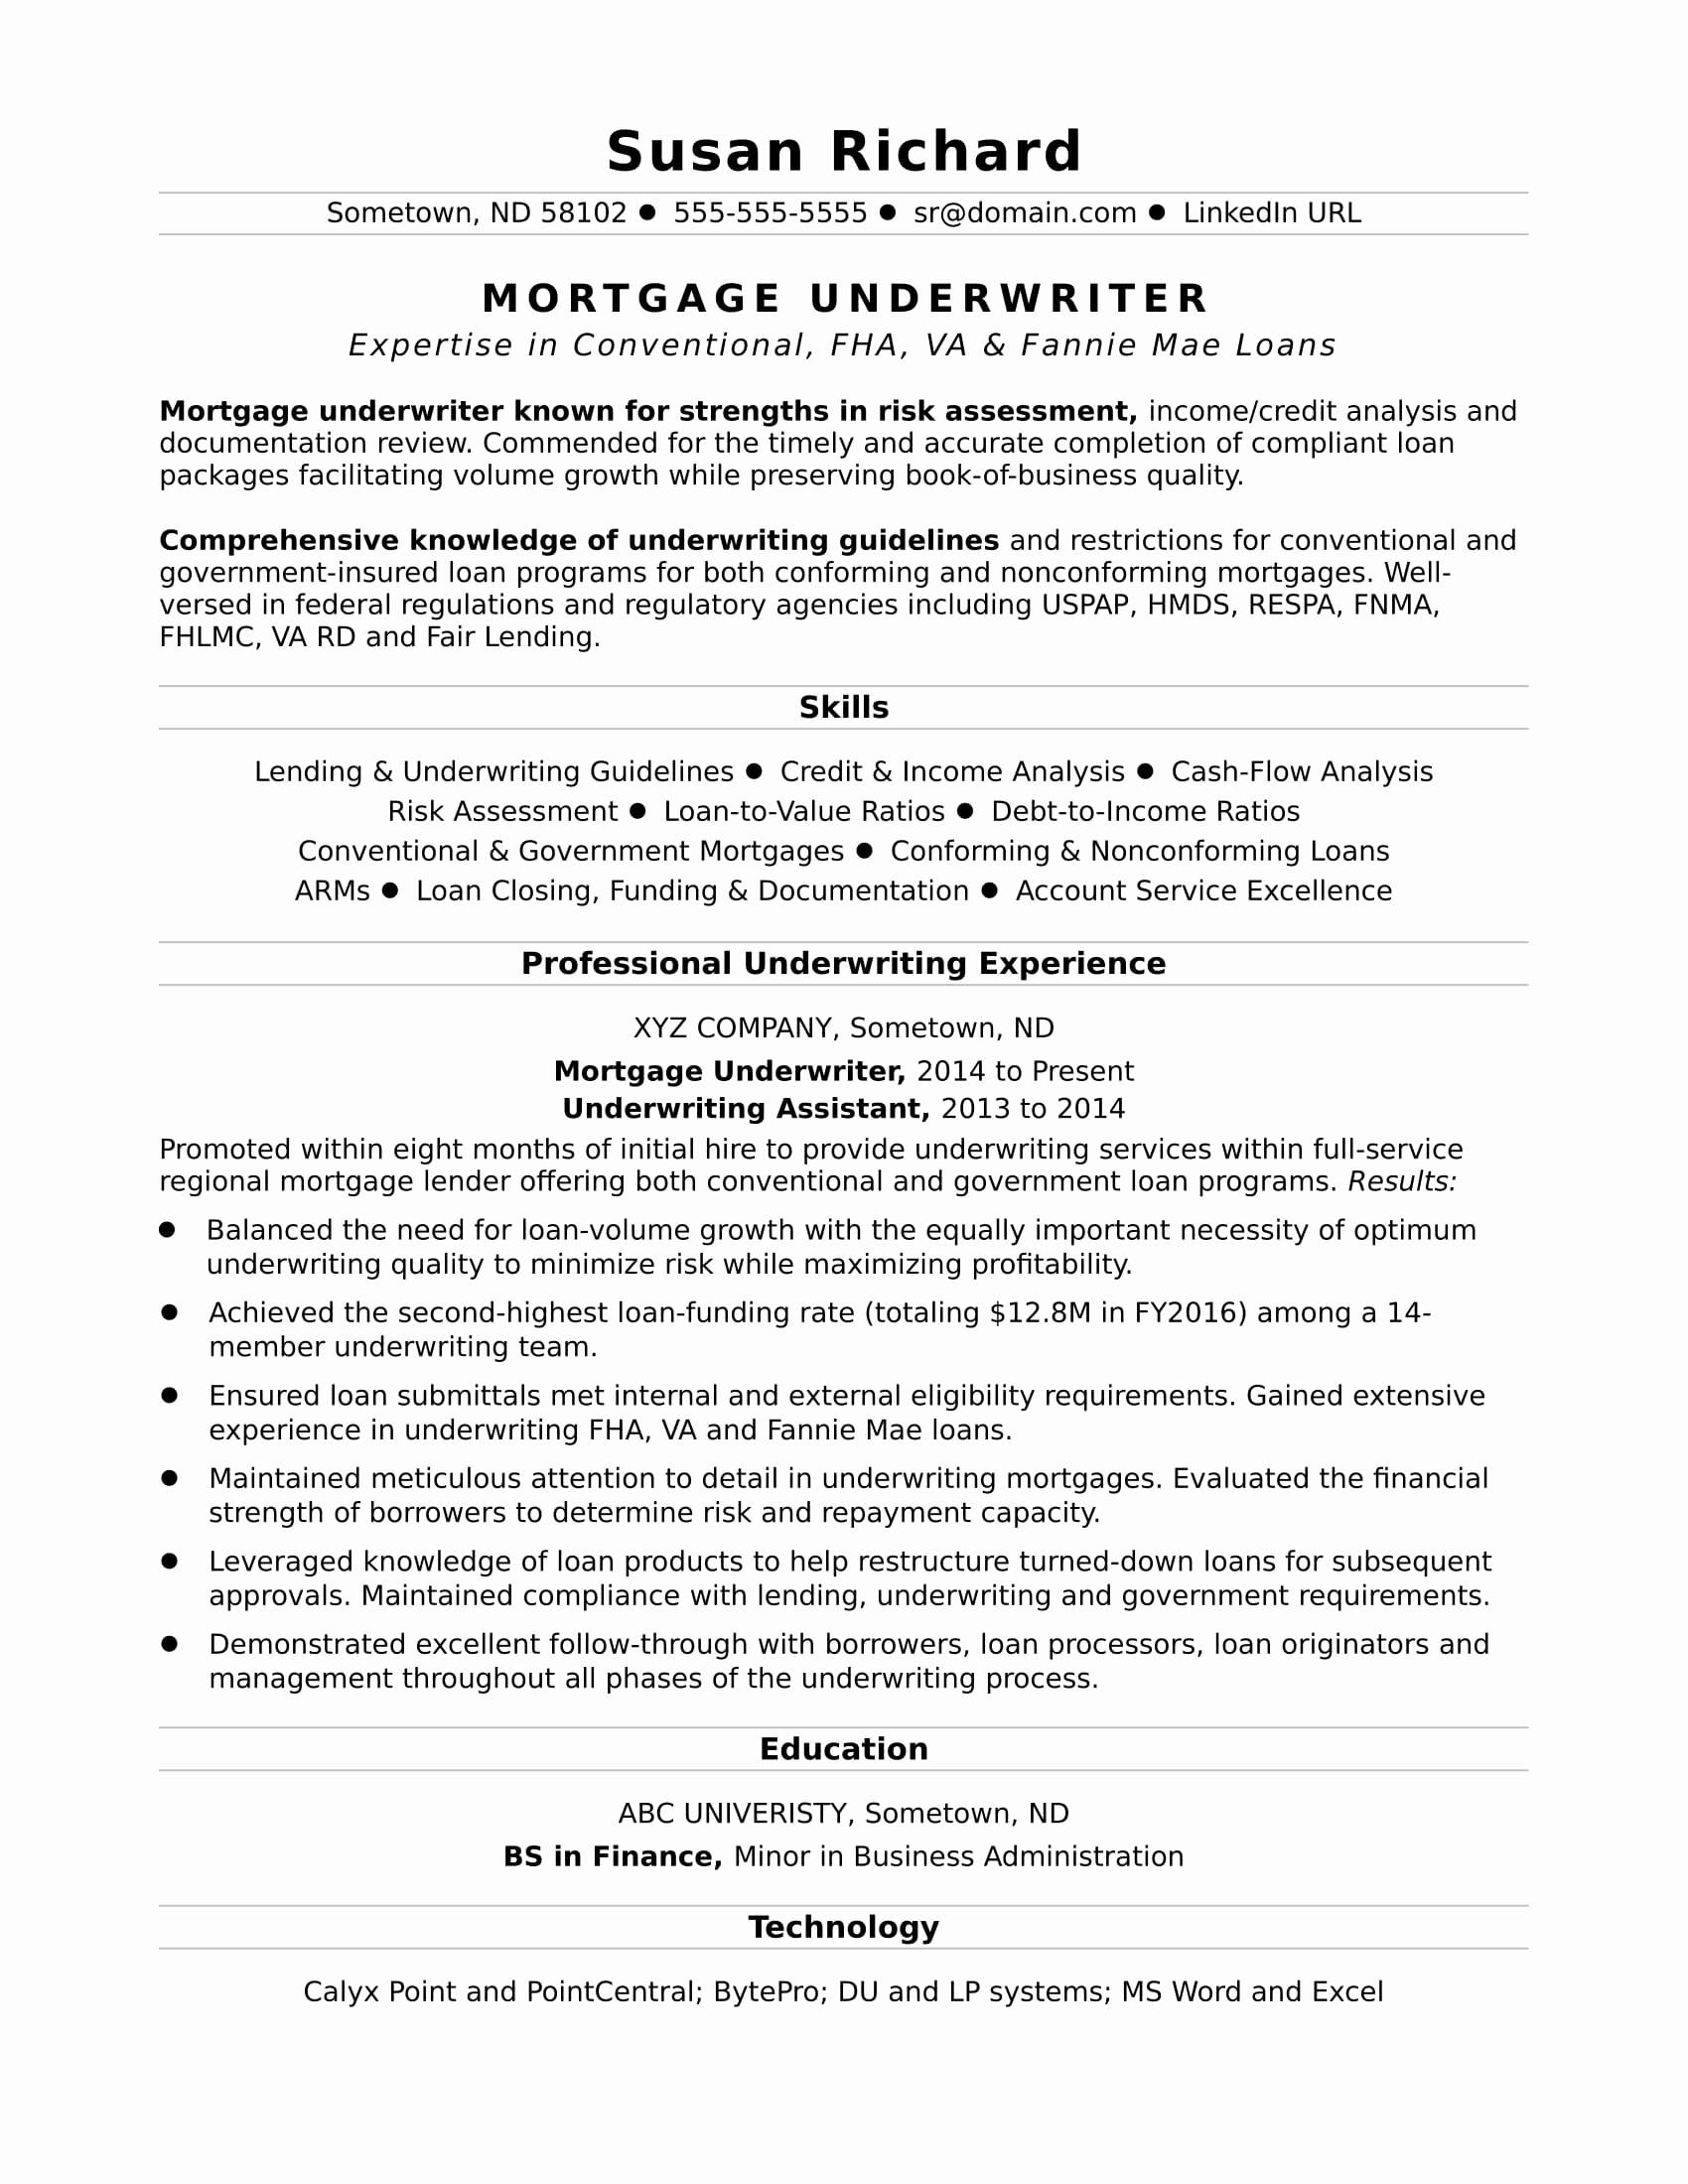 Cover Letter Template 2018 - Linkedin Cover Letter Lovely Detailed Resume Template Luxury Signs